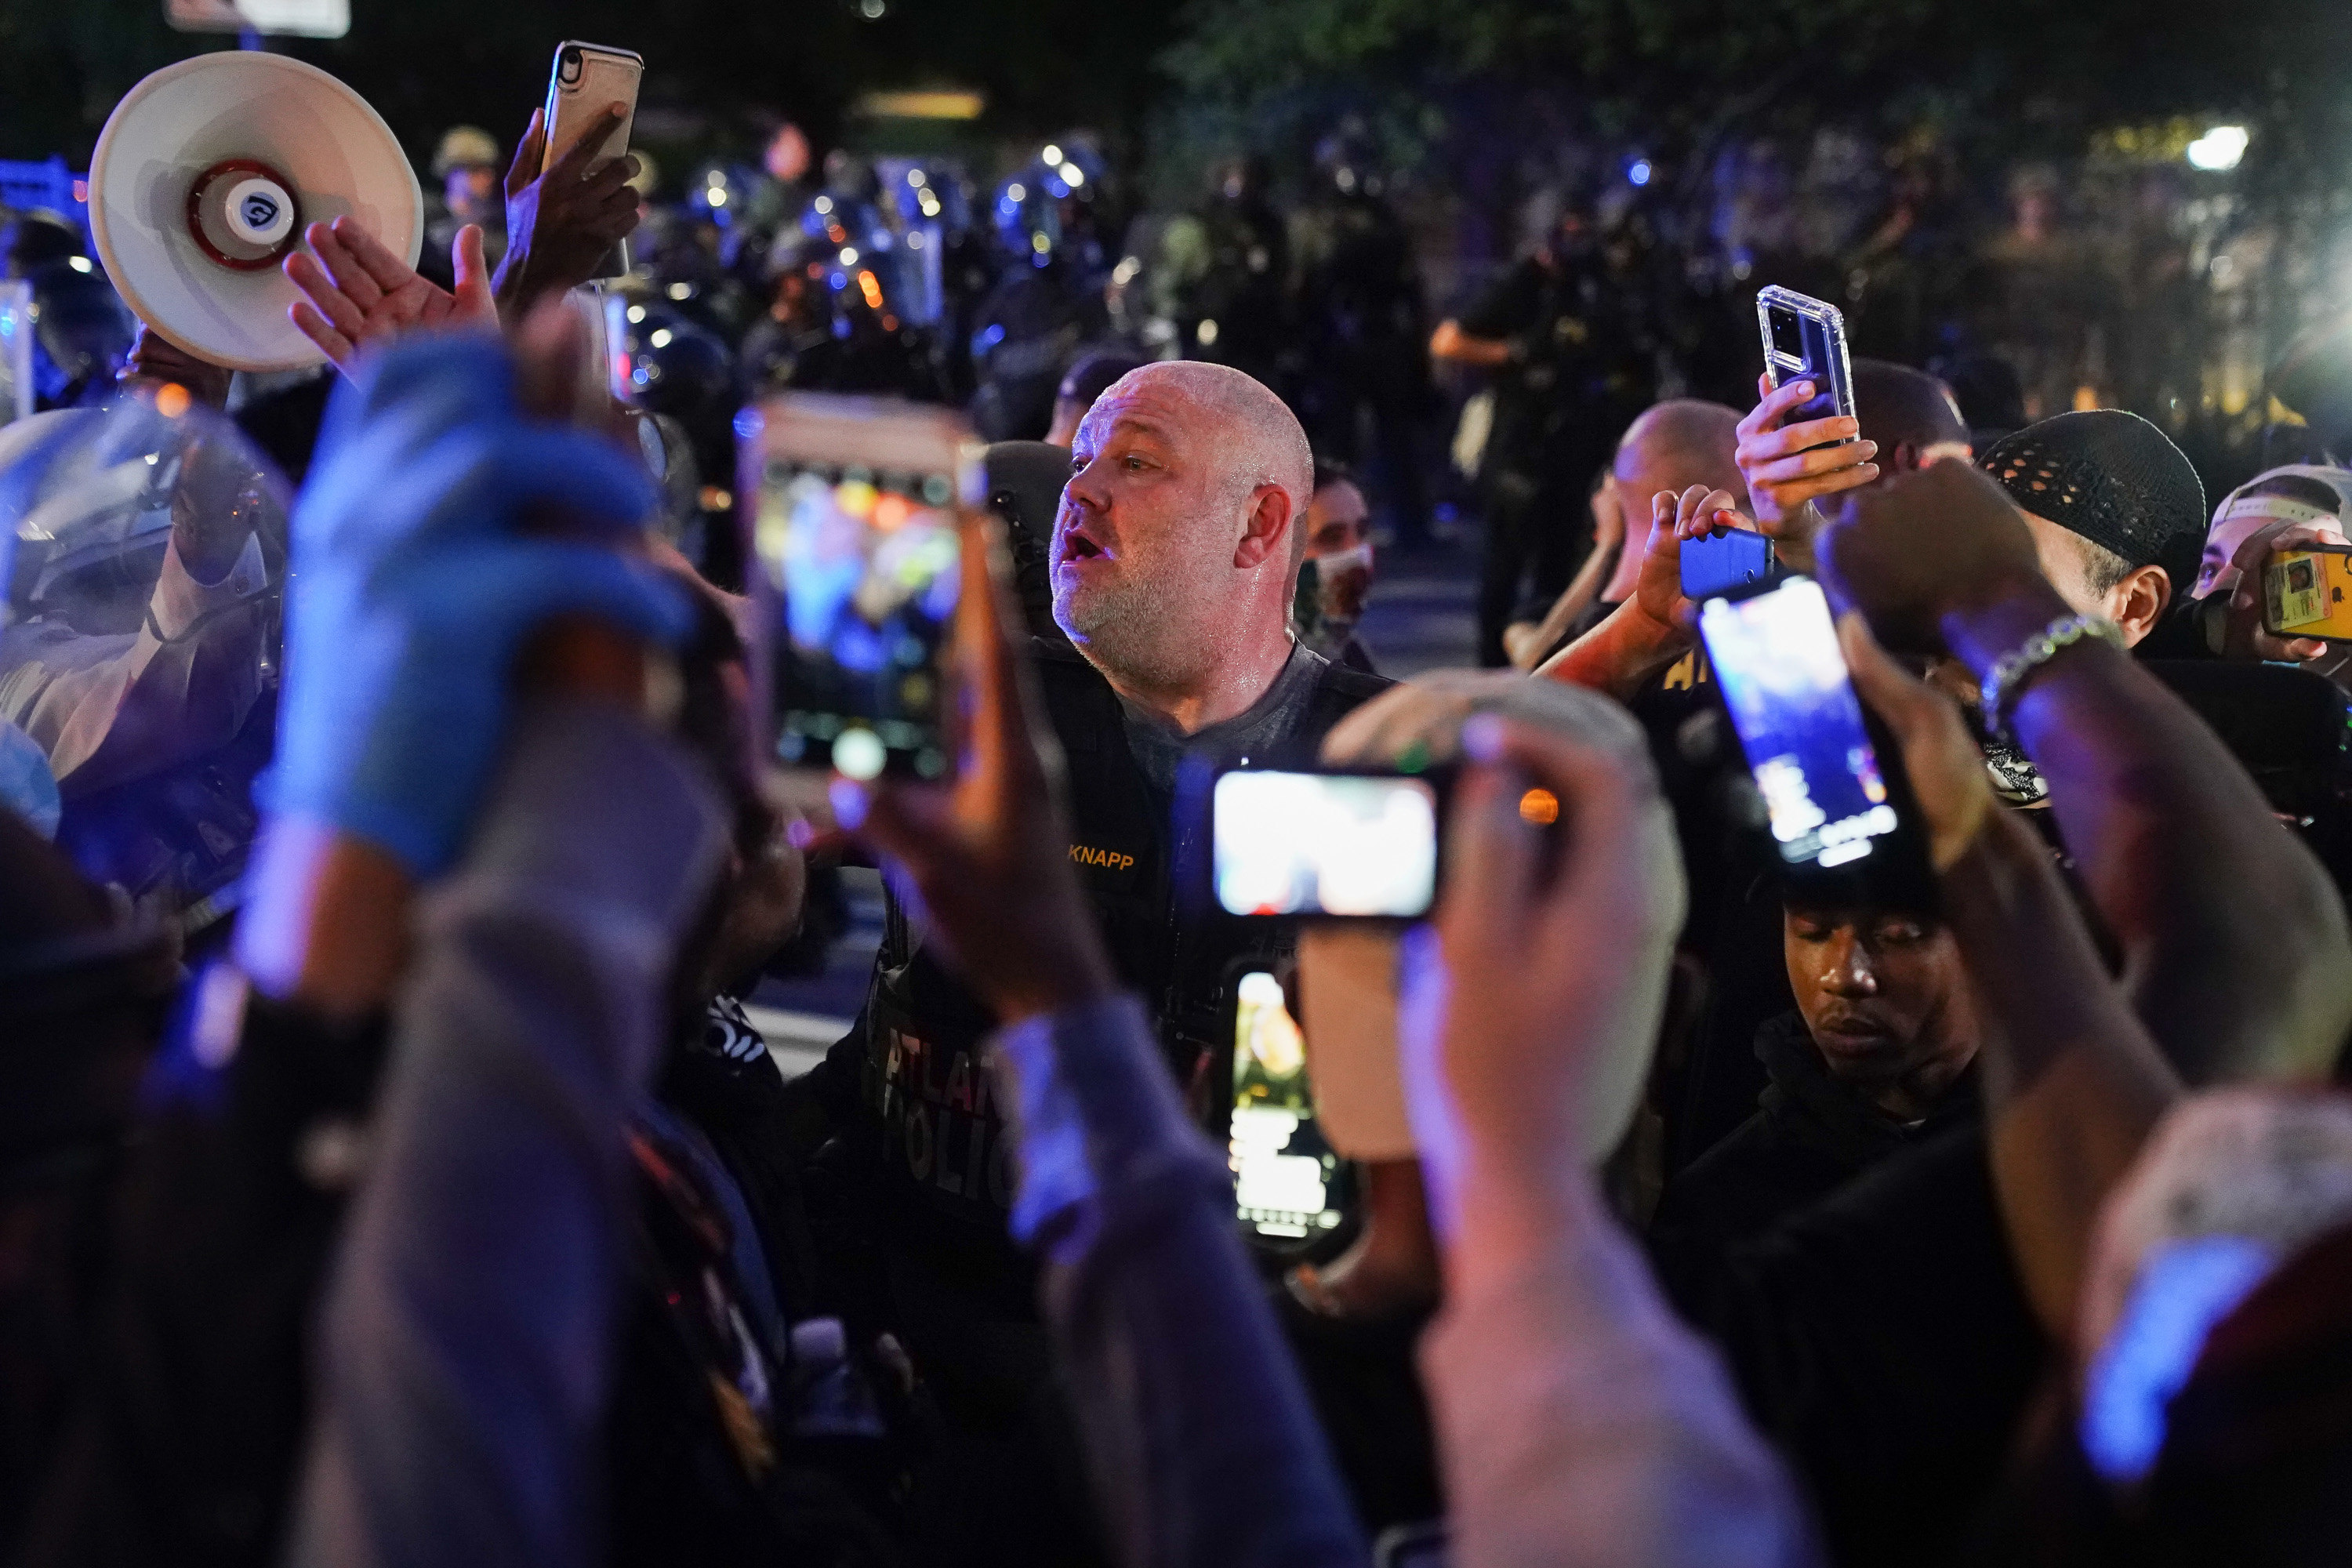 People in a crowd filming at night with cellphone cameras